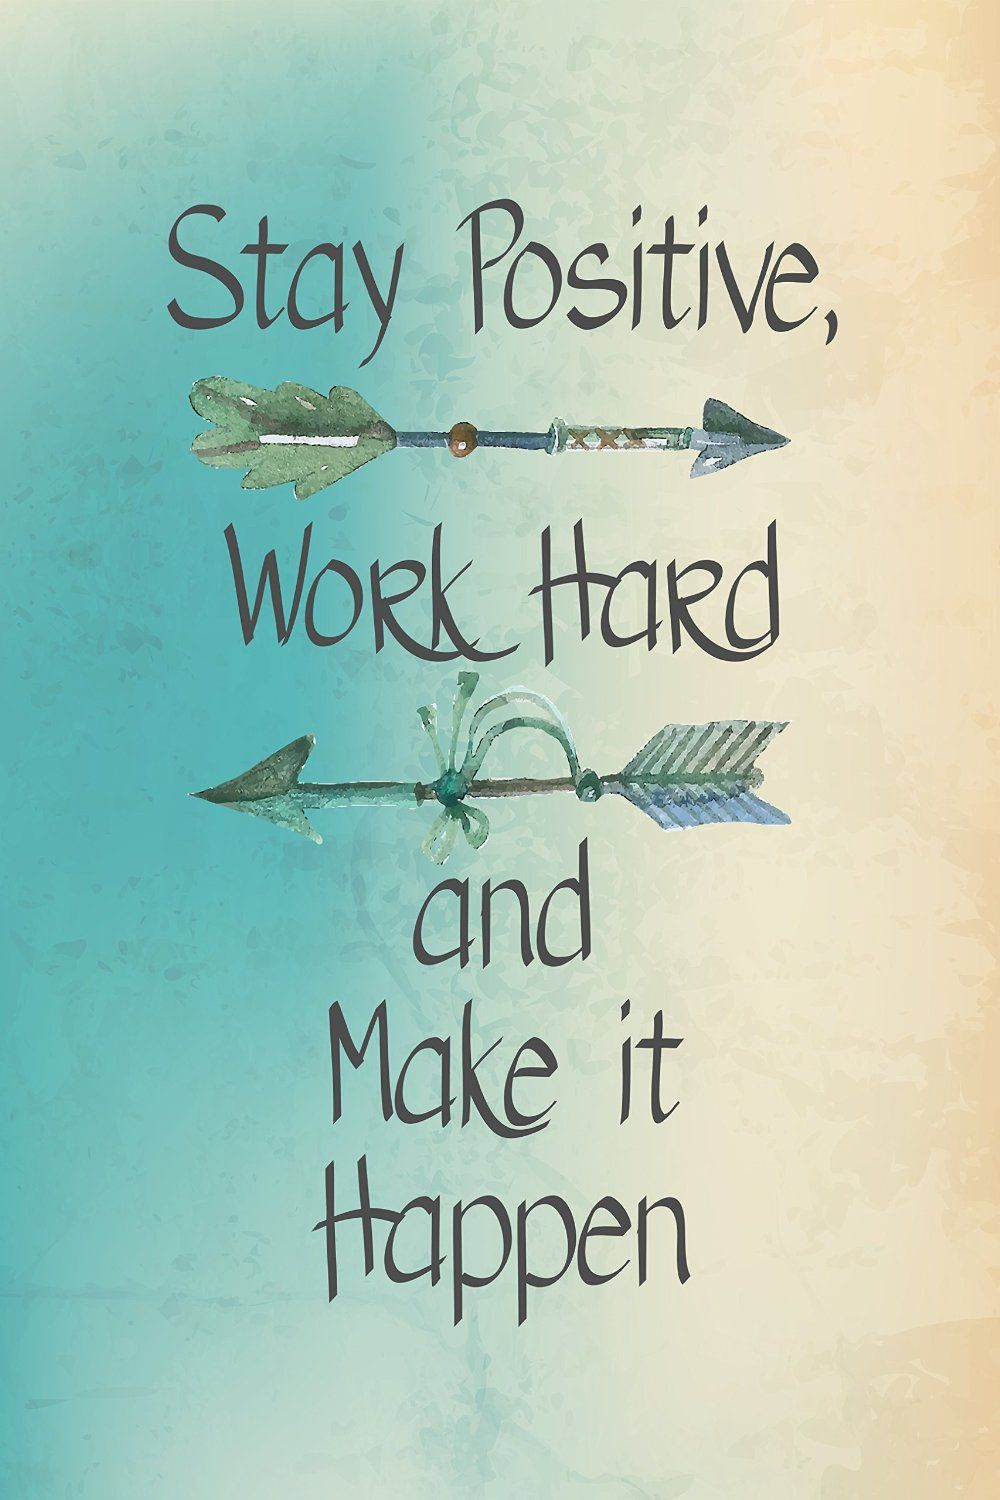 Inspirational Quotes For Work Stay Positive Work Hard And Make It Happen  Staying Positive